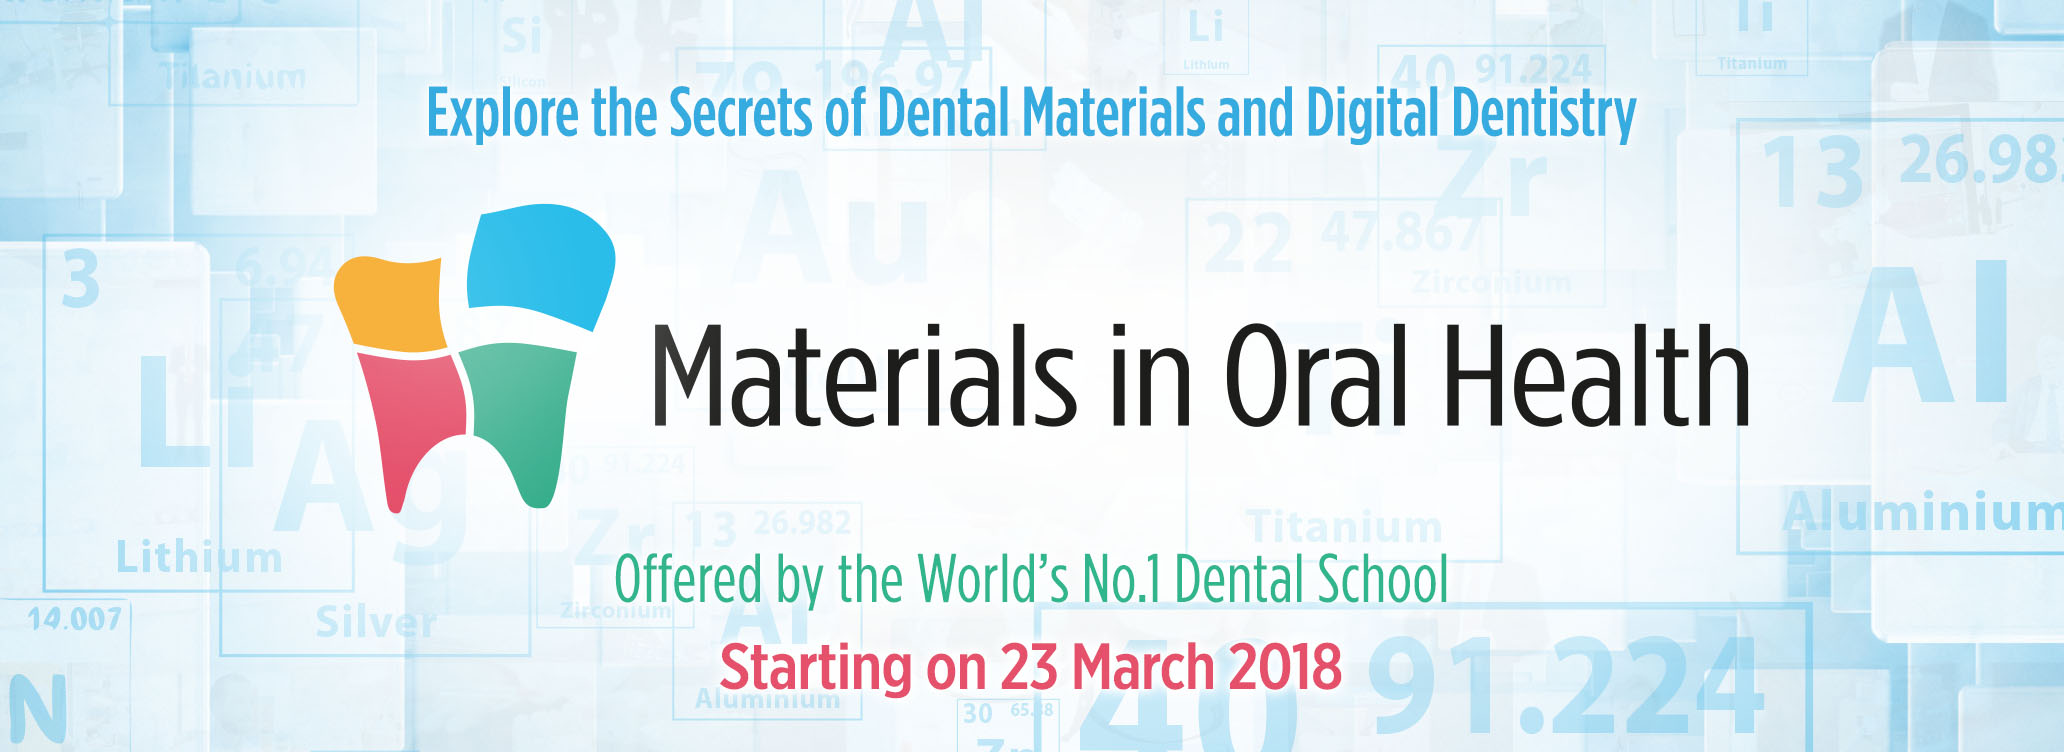 Materials in Oral Health